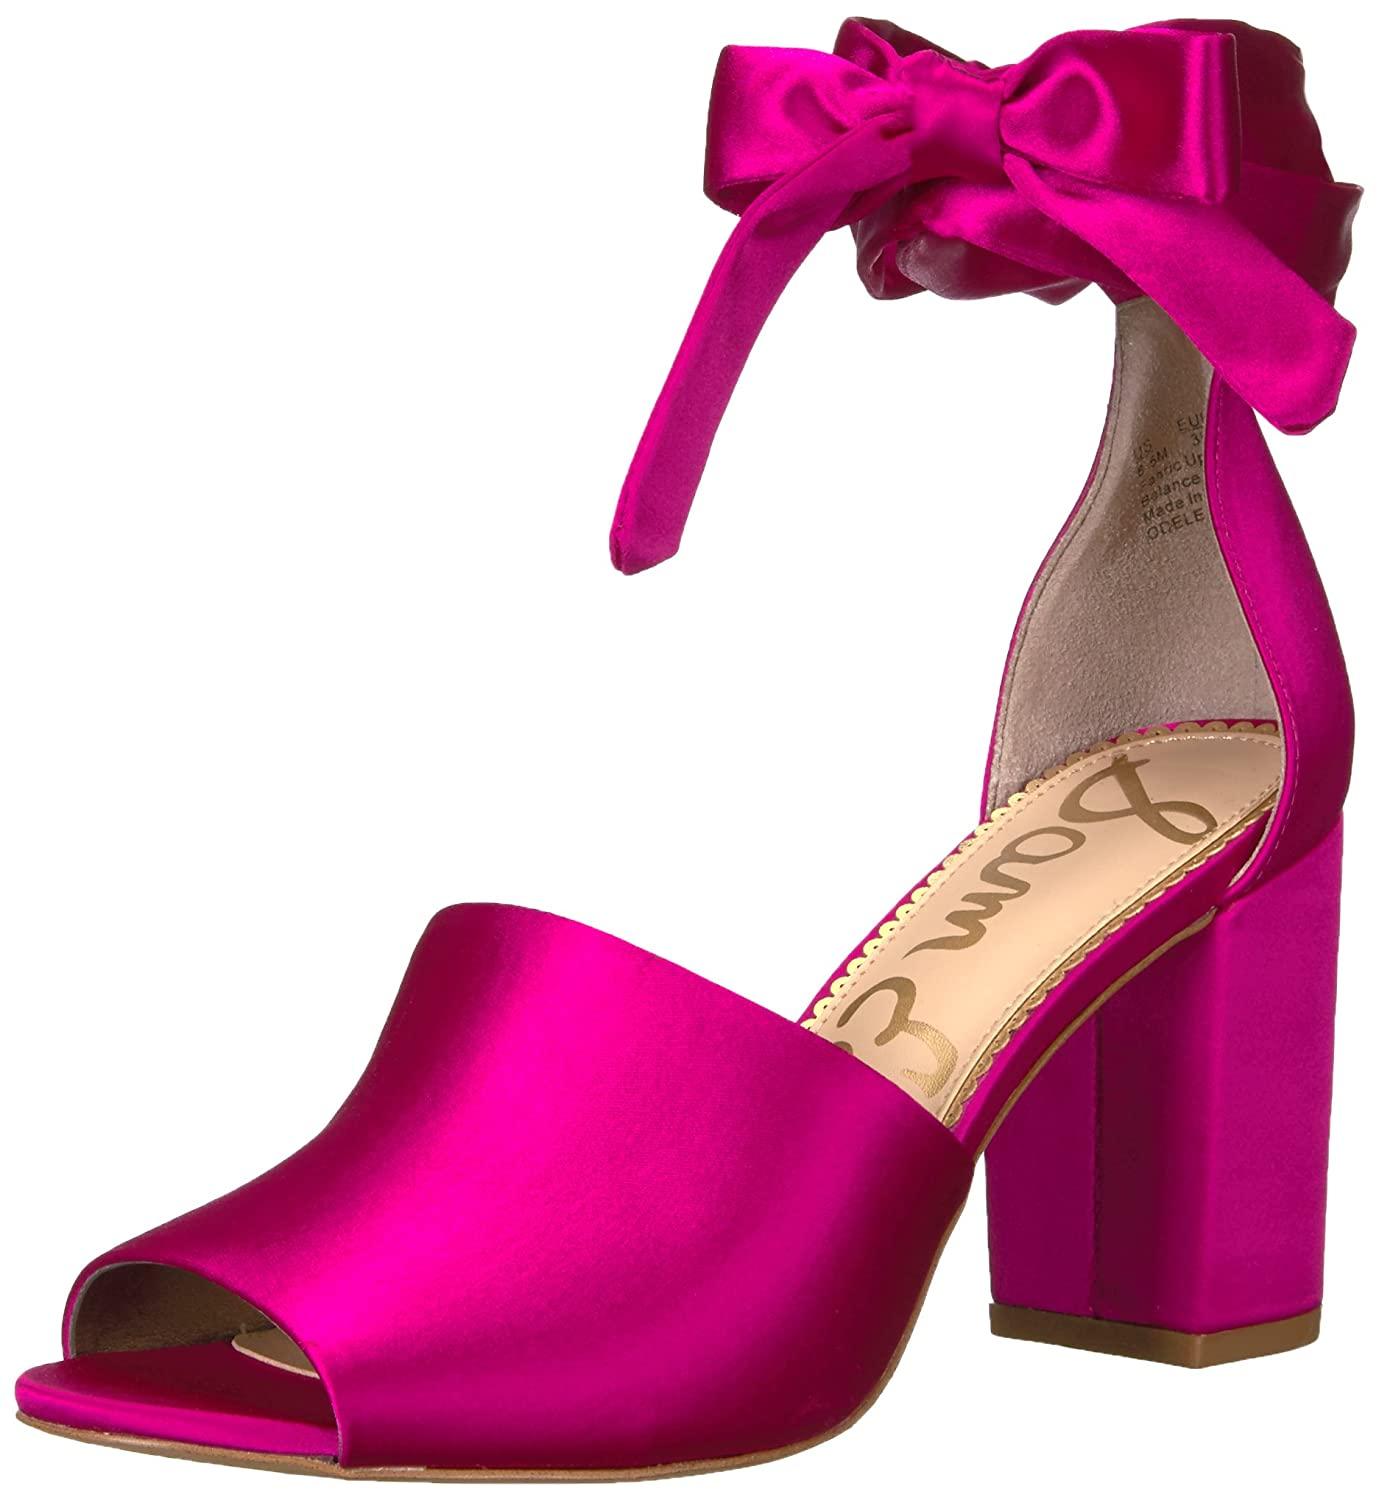 Sam Edelman Women's Odele Heeled Sandal B01MSYR4GP 5 B(M) US|Hot Pink Satin